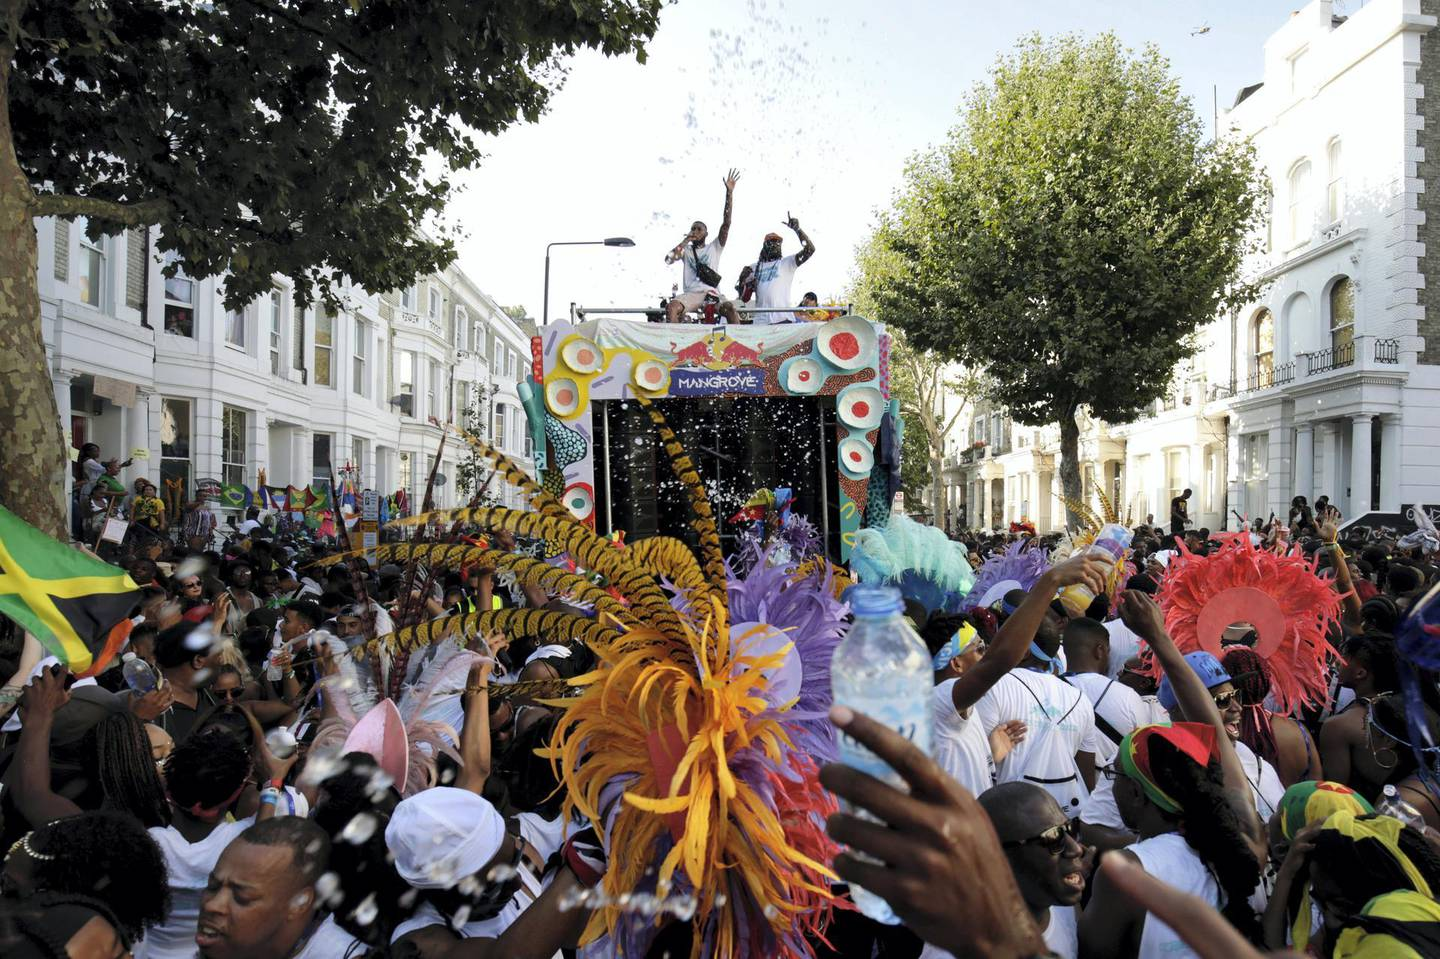 LONDON, ENGLAND - AUGUST 26: A general view of atmosphere on the Red Bull Music x Mangrove truck at Notting Hill Carnival 2019 on August 26, 2019 in London, England. (Photo by John Phillips/Getty Images for Redbull)